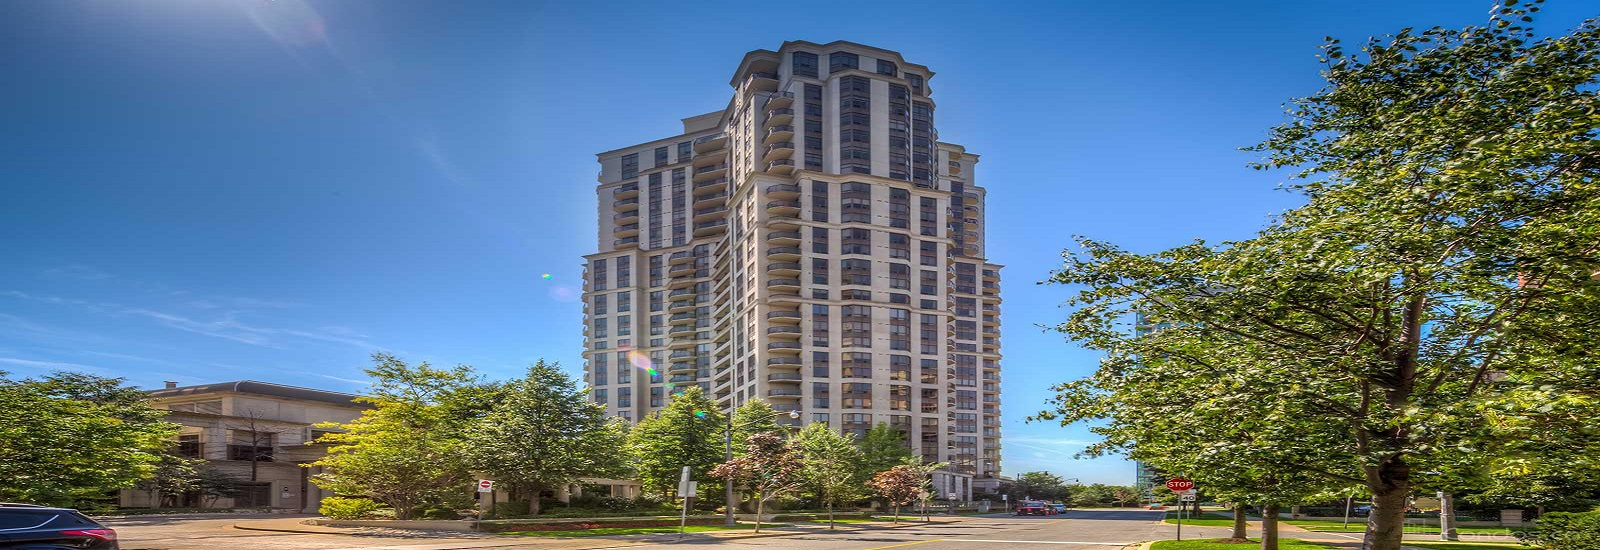 78 Harrison Garden Blvd Condos For Sale